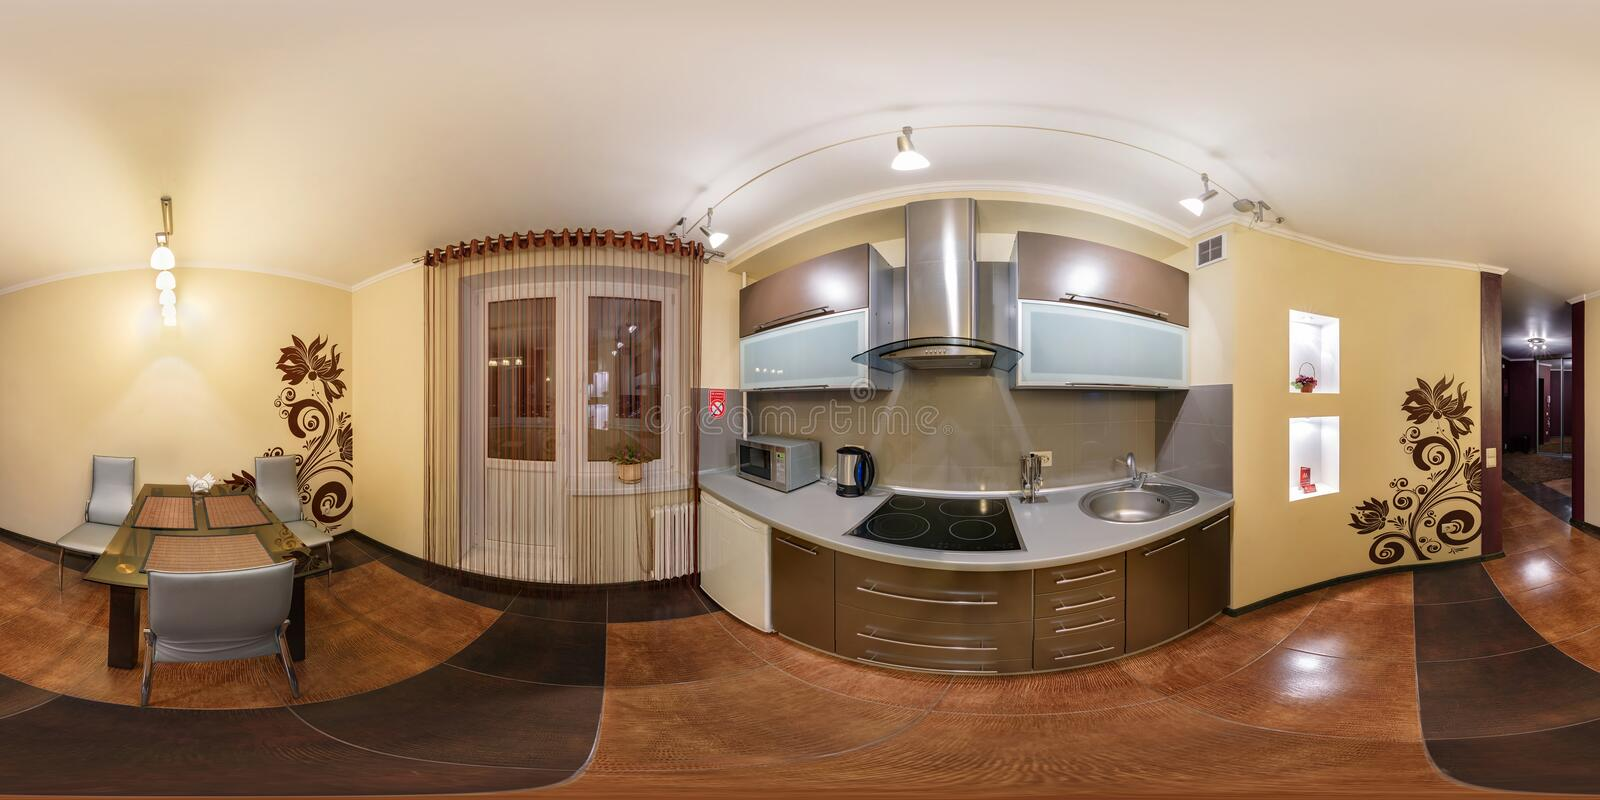 MINSK, BELARUS - DECEMBER 5, 2012: Full 360 panorama in equirectangular spherical equidistant projection in interier modern loft. Kitchen room in yellow light stock photography